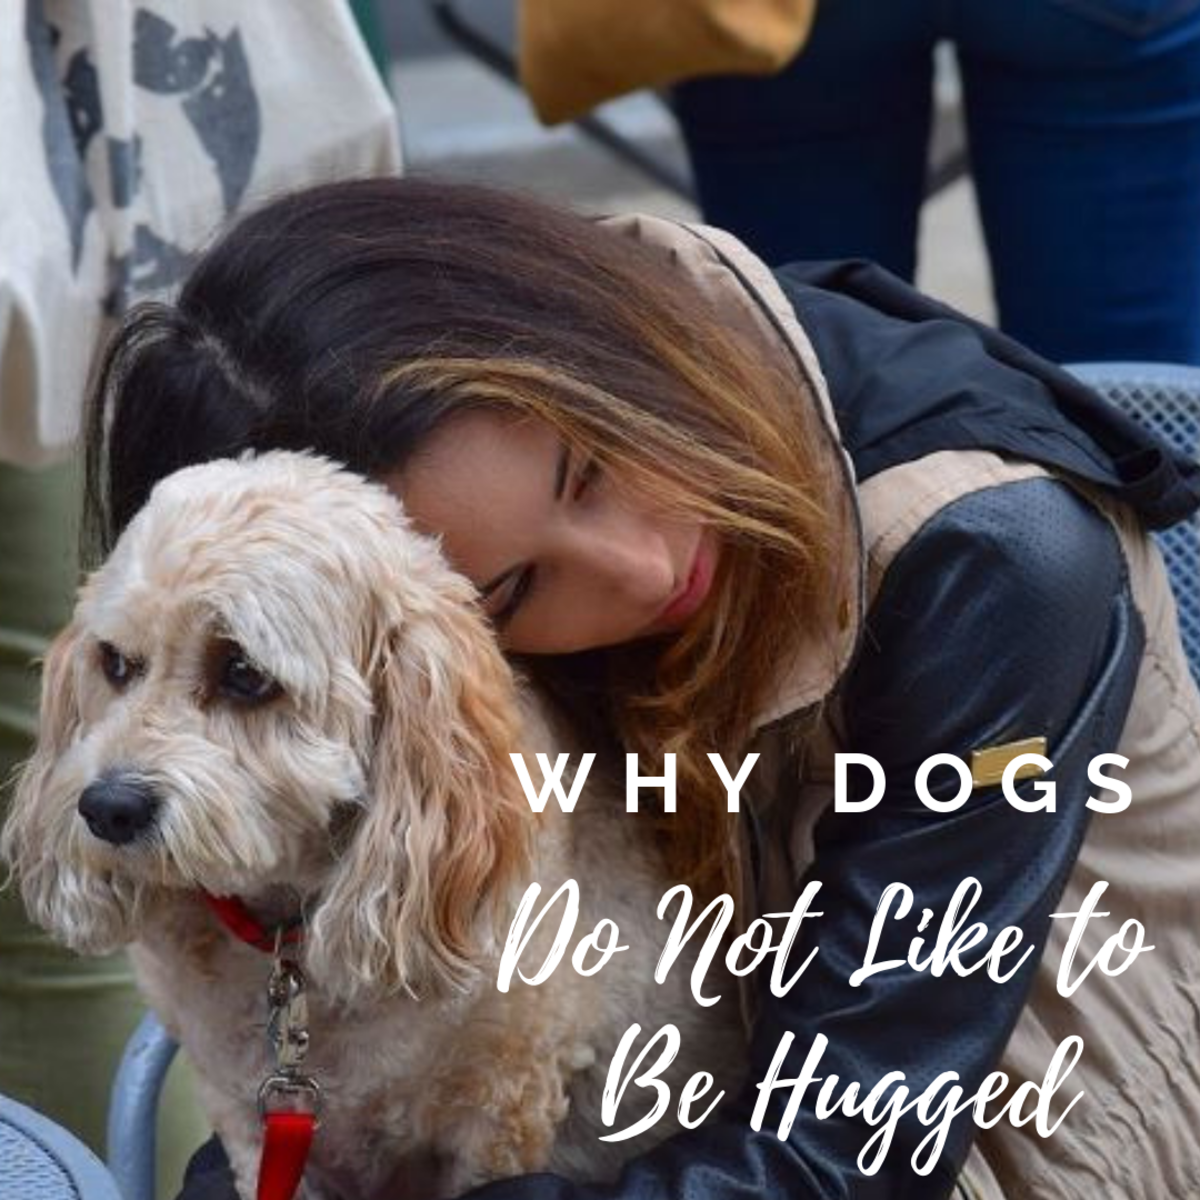 Why Dogs Do Not Like to Be Hugged